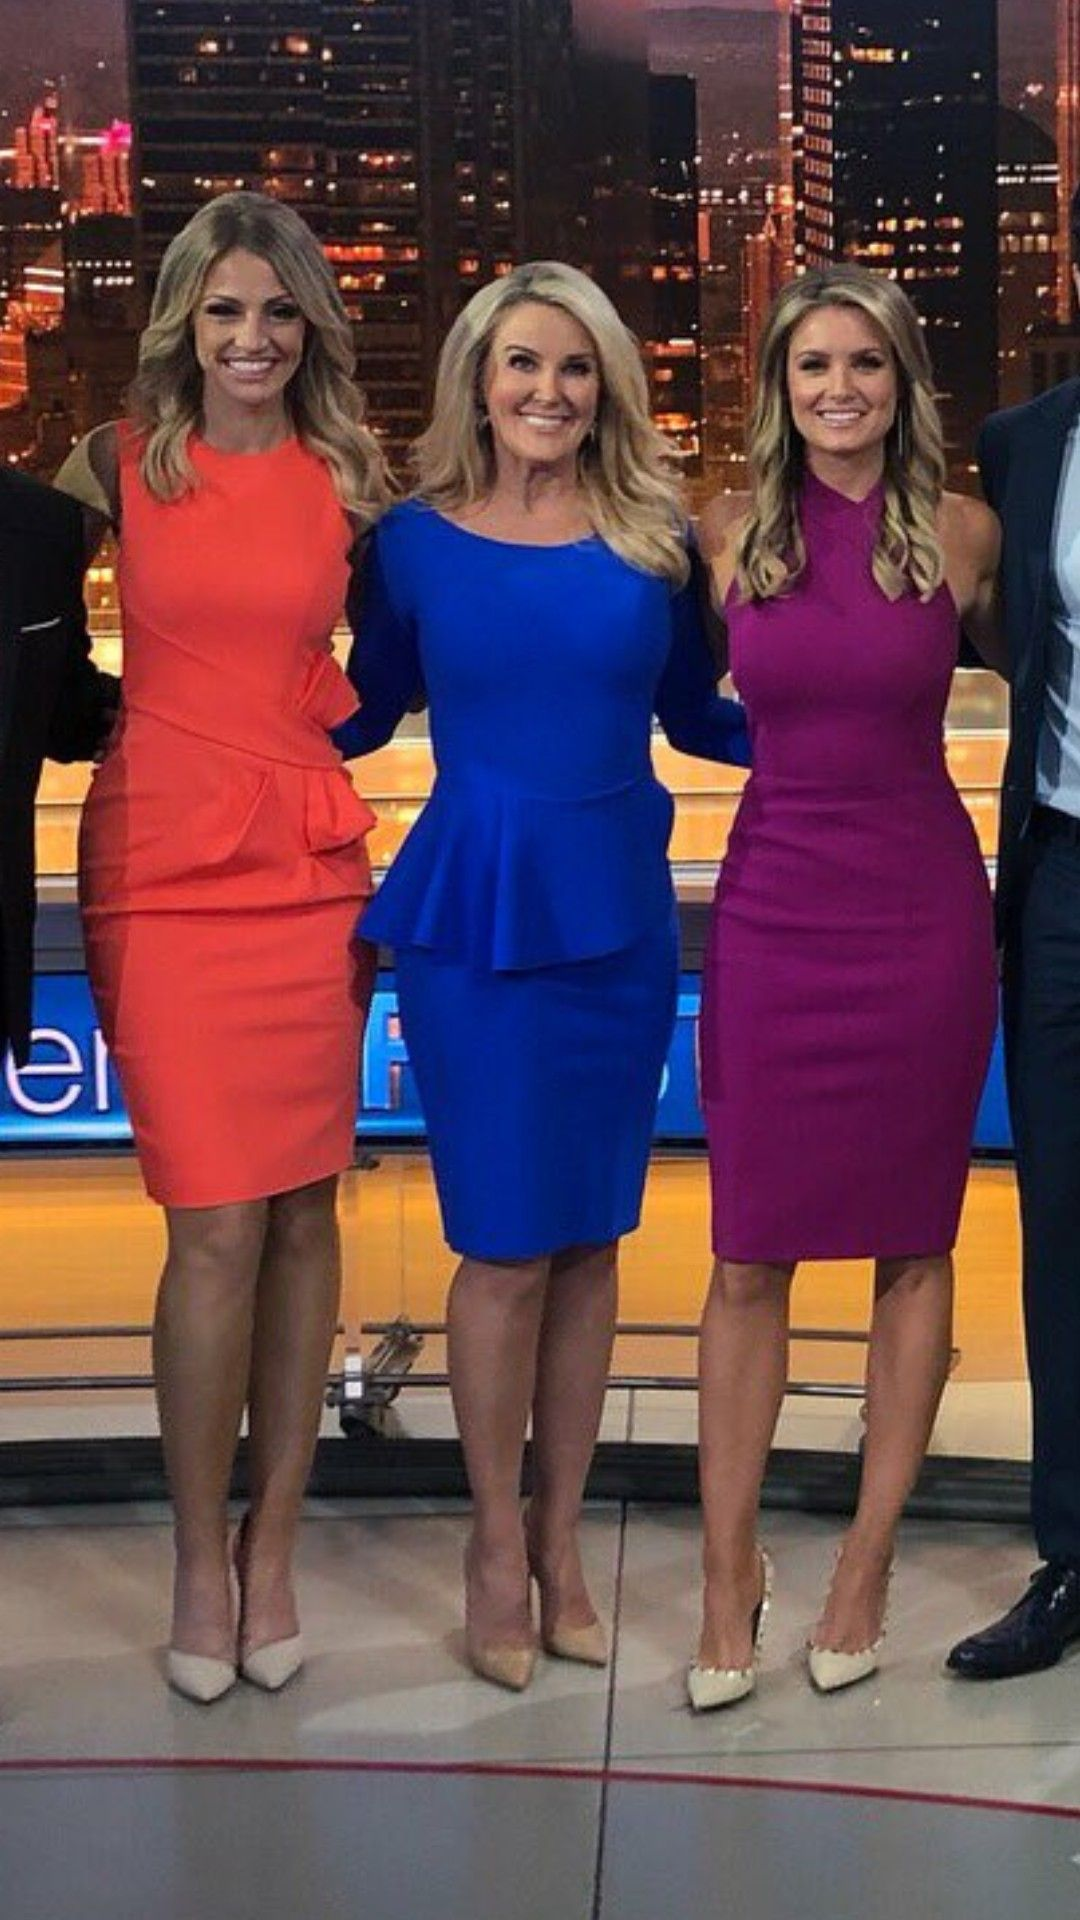 Carly Shimkus, Heather Childers & JIllian Mele | The